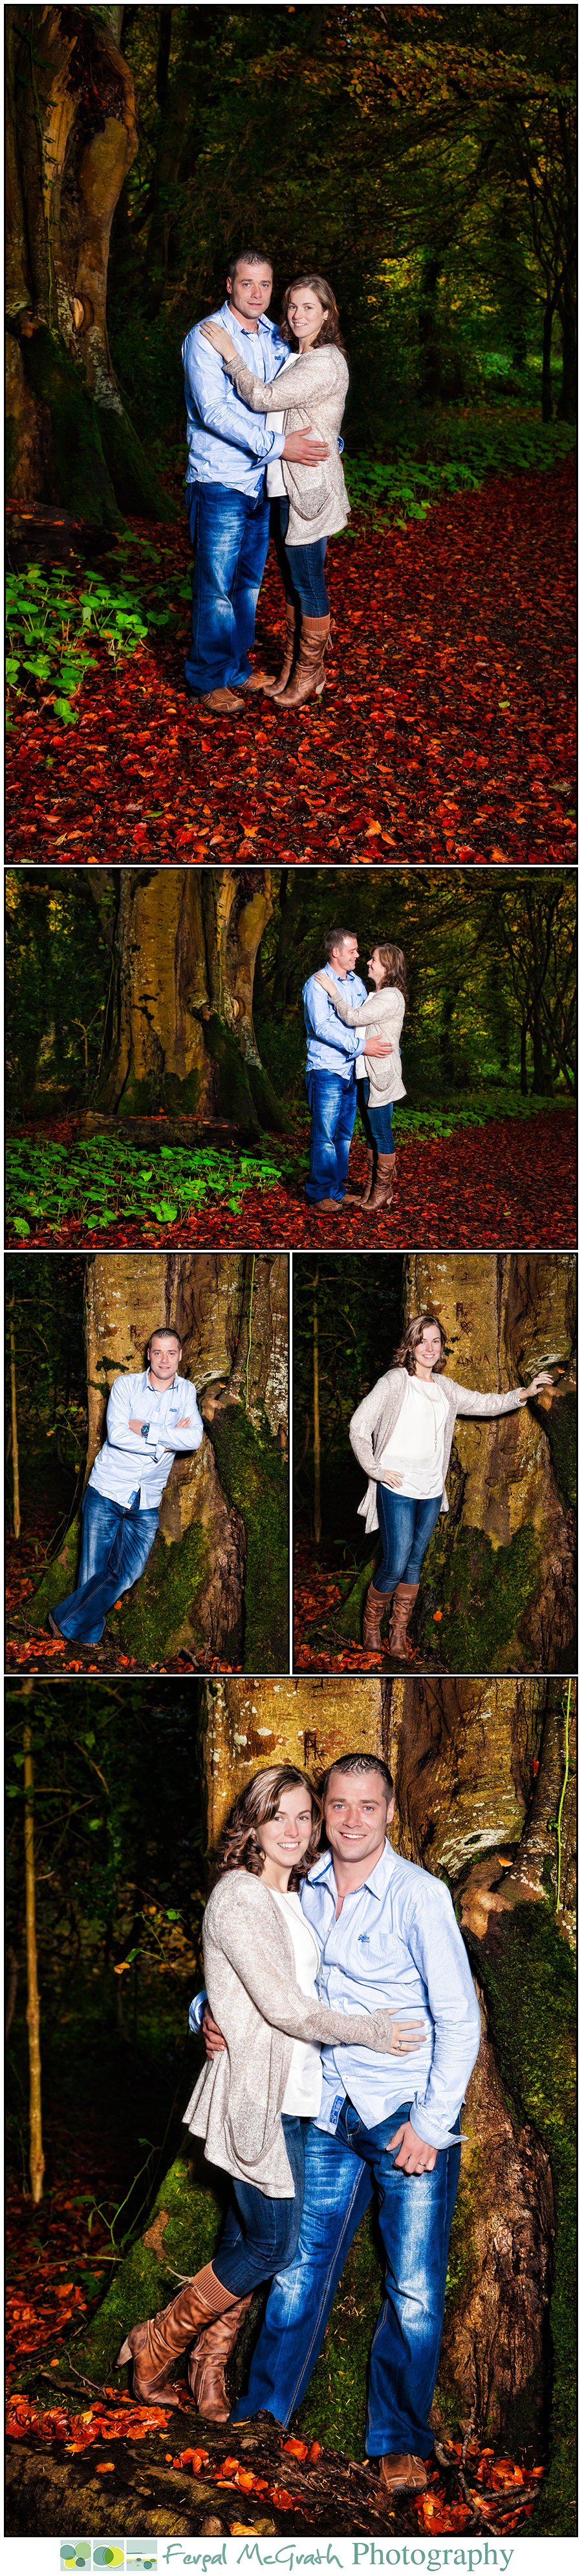 happy couple family portraits in a forest setting in autumn in fermanagh